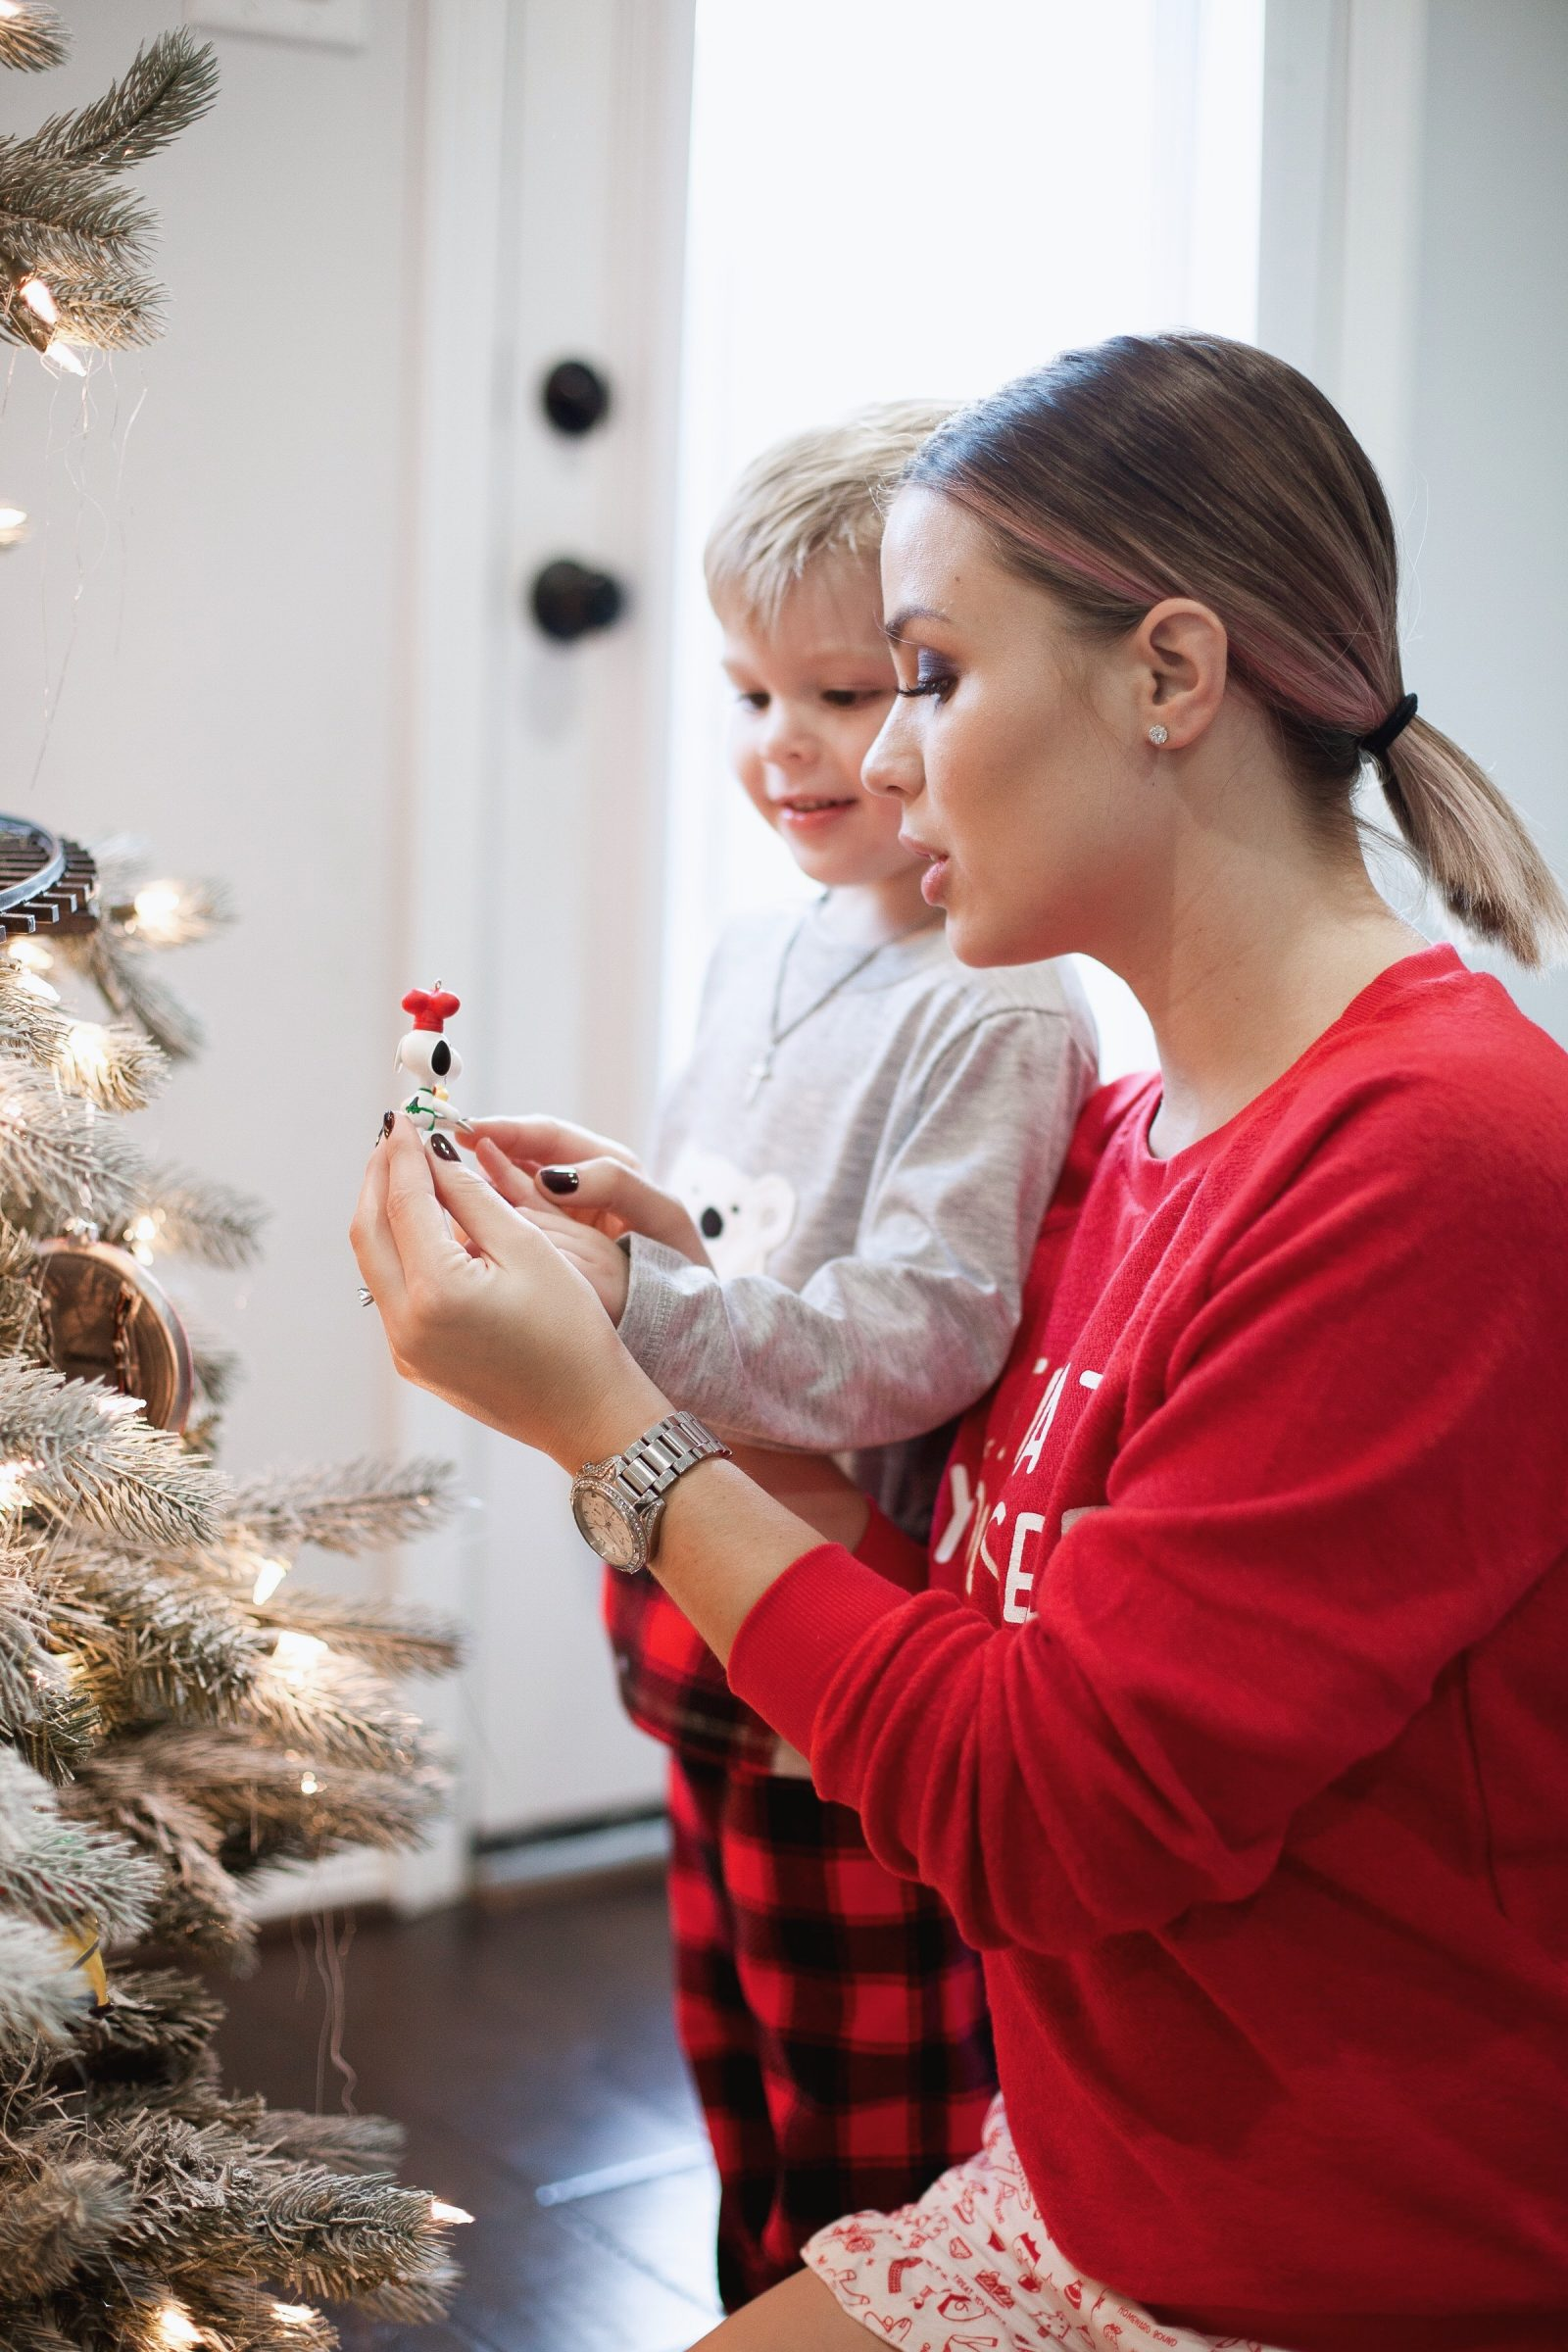 Houston Lifestyle Blogger Uptown with Elly Brown shares why it's important to teach our kids about Kindness this holiday season. Click here for more